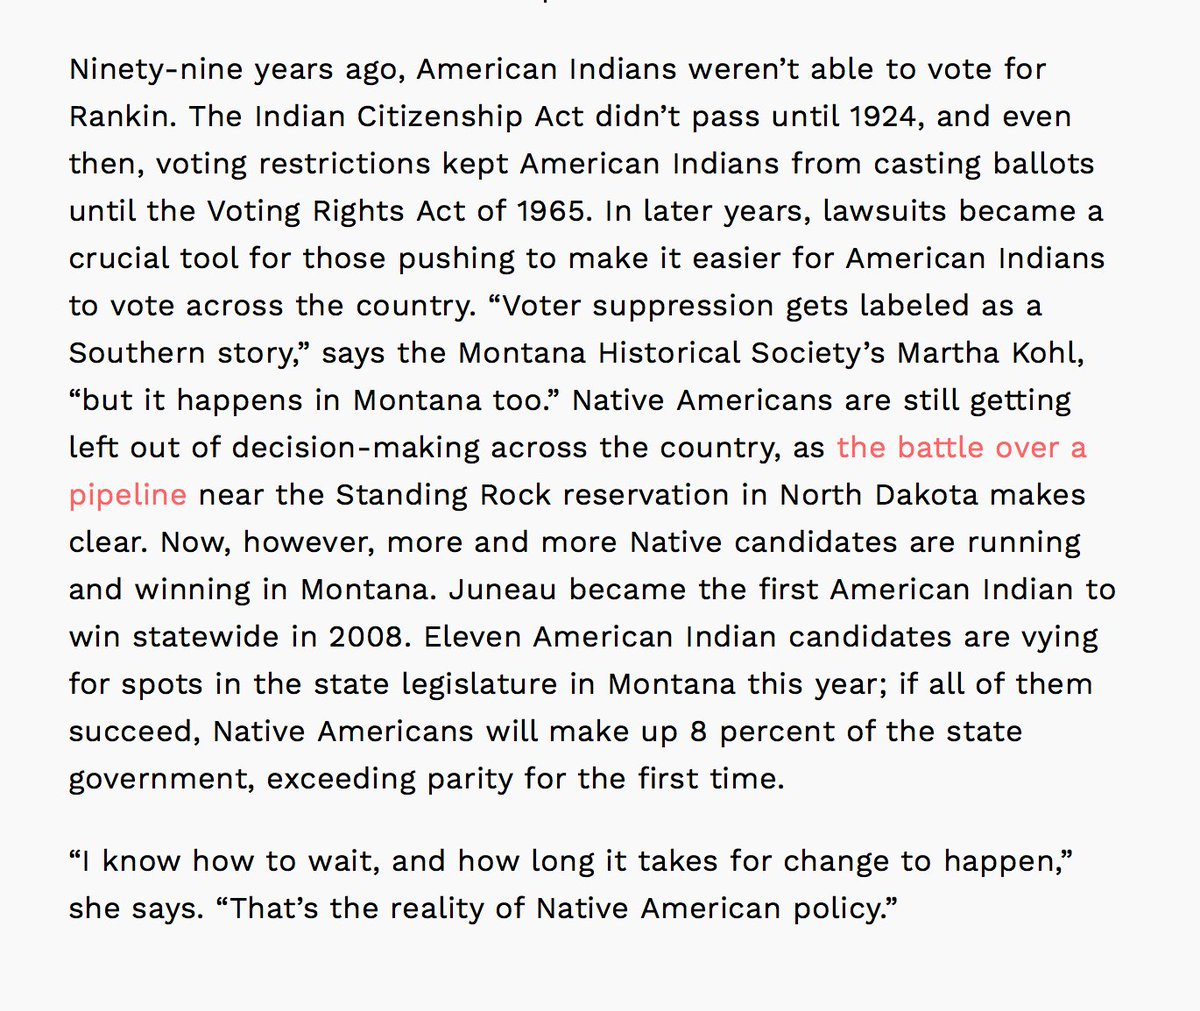 """""""Voter suppression gets labeled as a Southern story, but it happens in Montana, too."""" Revisi @j_fullert 's reporhttps://t.co/caadkKyB0qt."""